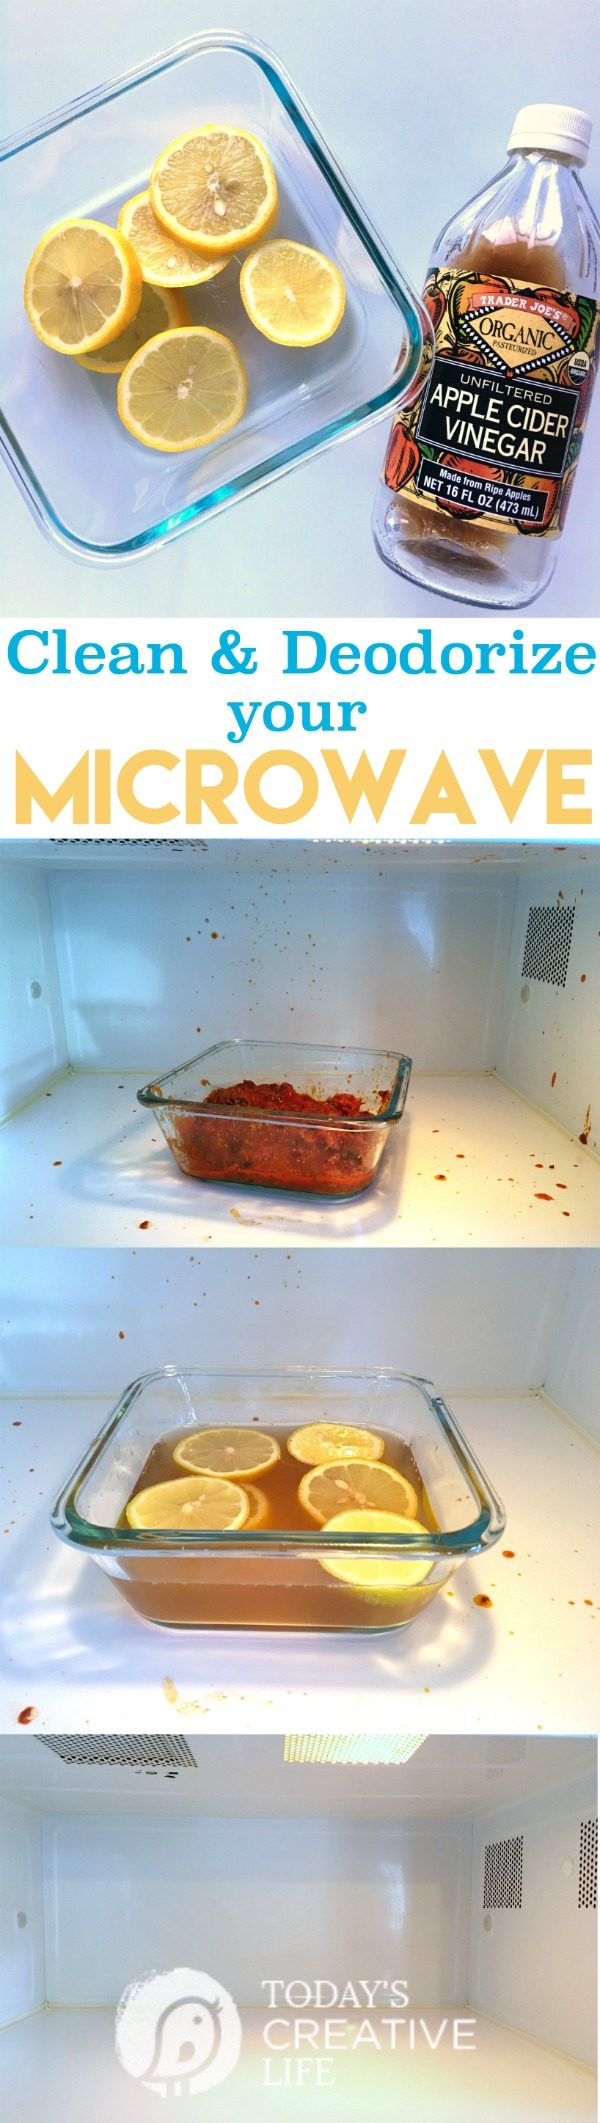 How To Clean And Deodorize A Microwave This Cleaning Method Is Non Toxic Using